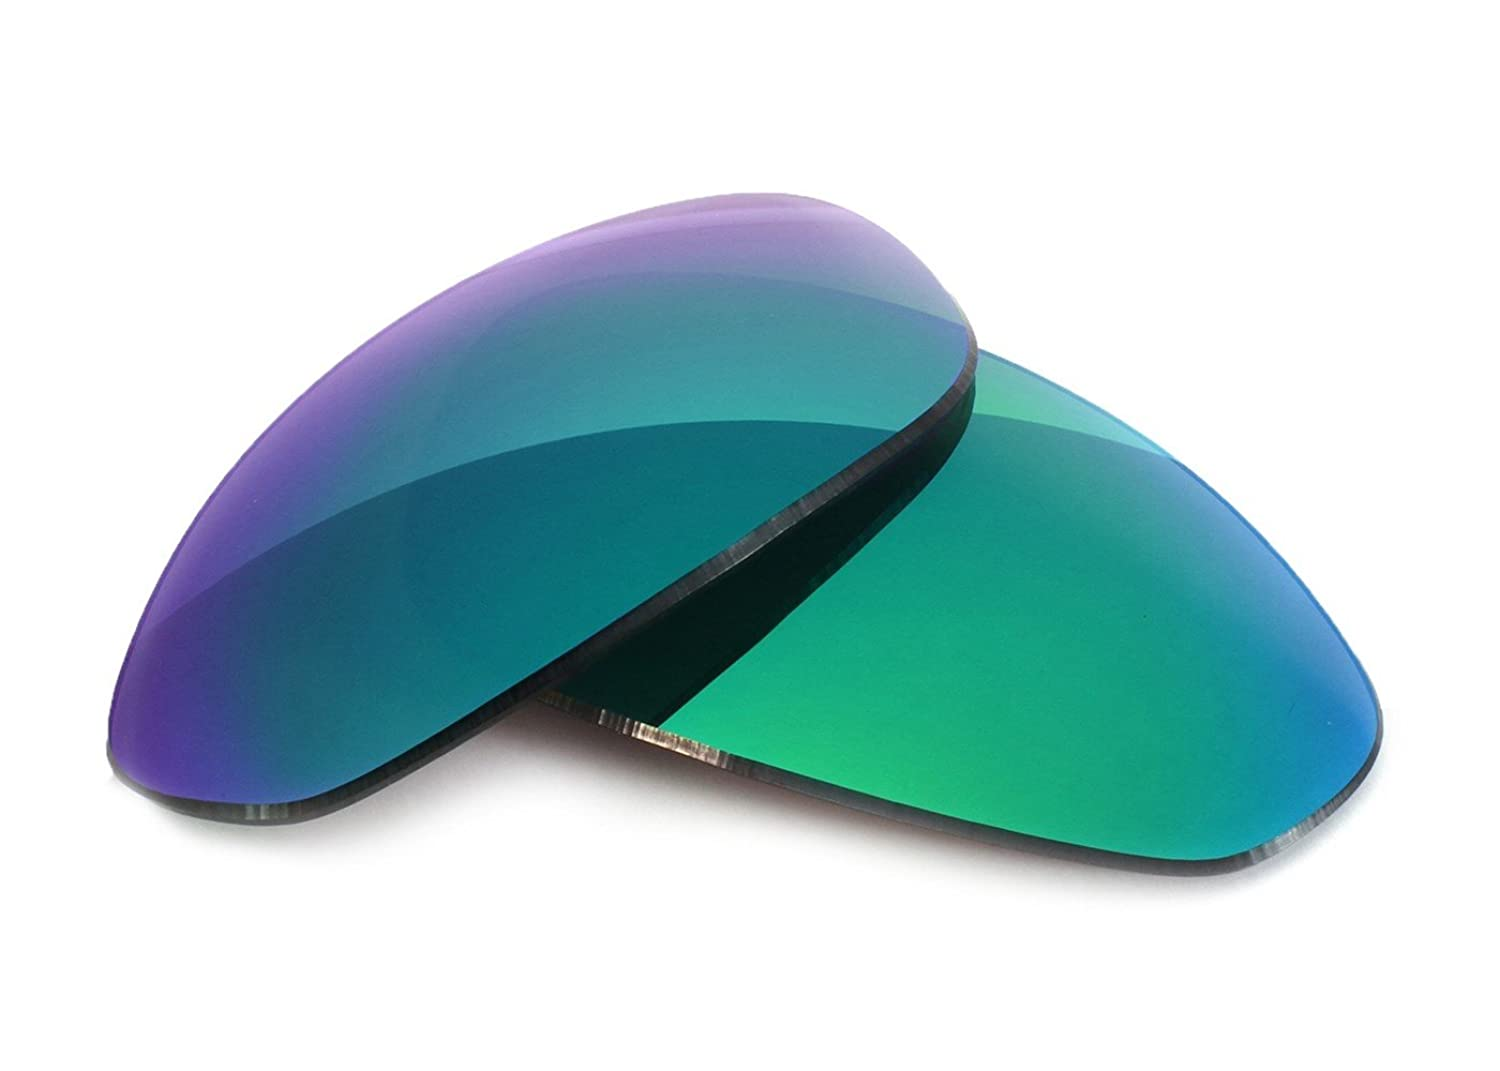 8c25a6085a4 Amazon.com  Fuse Lenses for Wiley X Romer II Advanced - Sapphire Mirror  Tint  Clothing